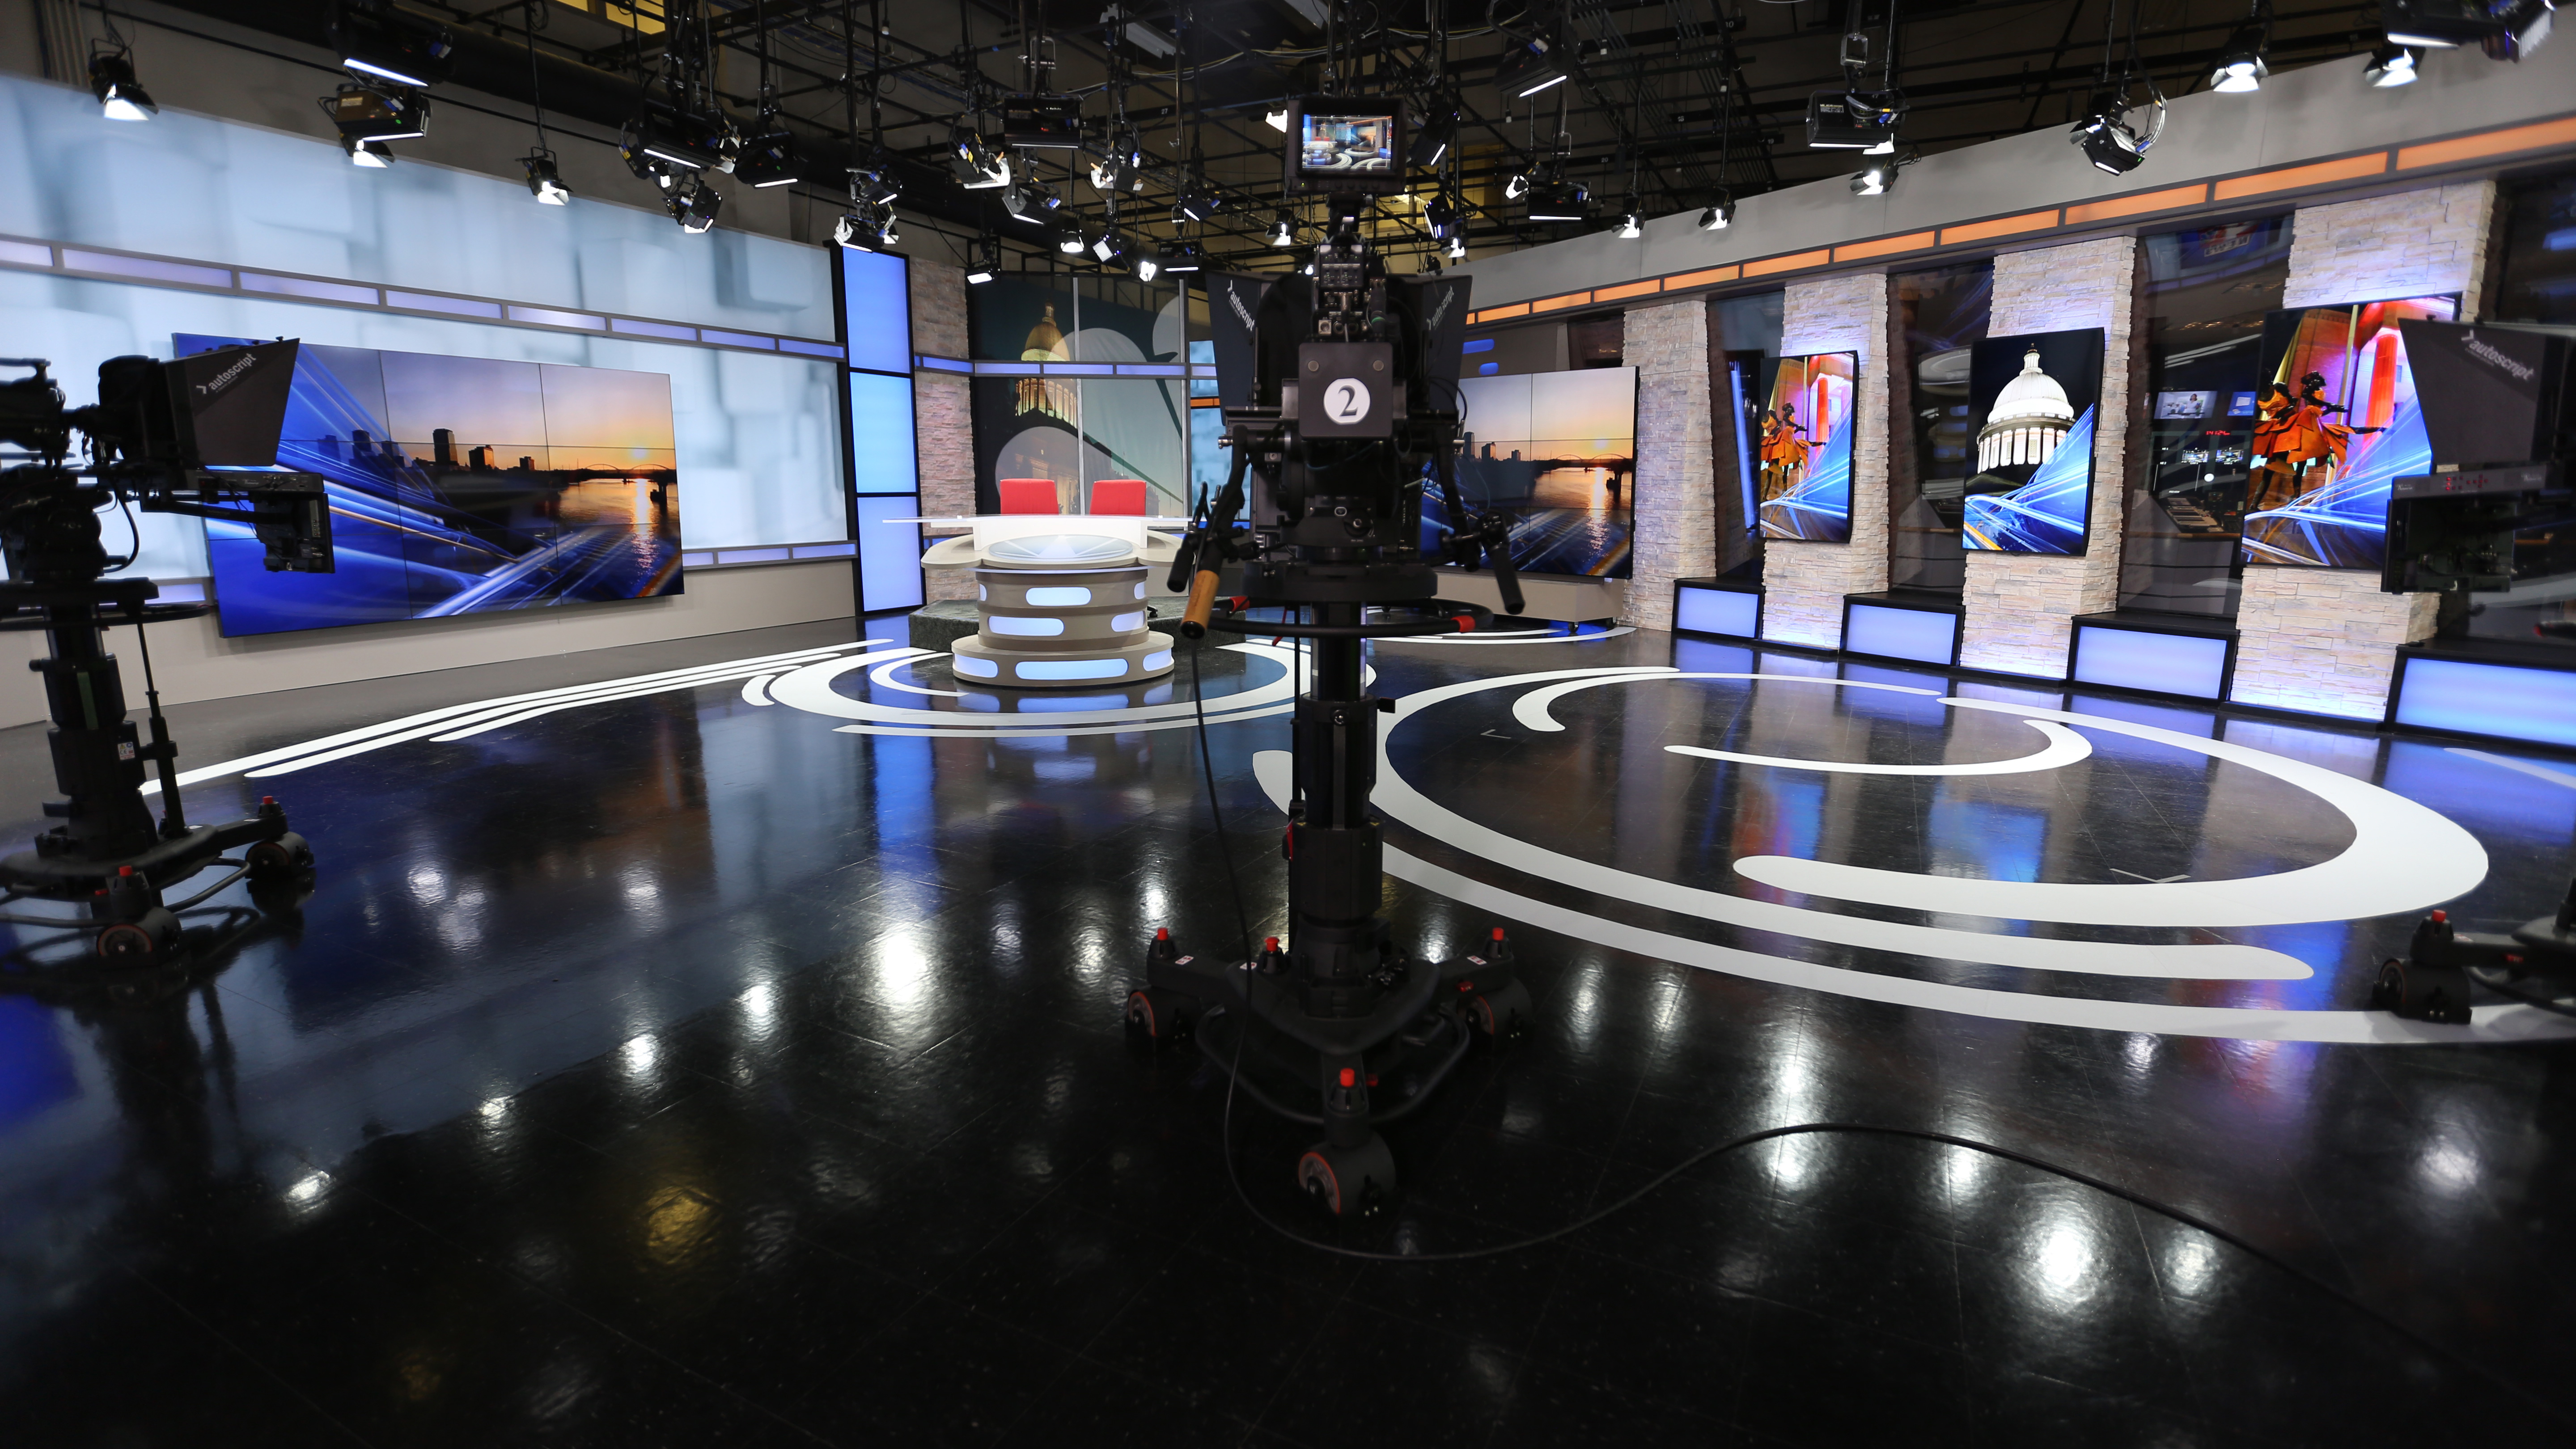 ncs_kark-4-news-tv-studio-arkansas_0002